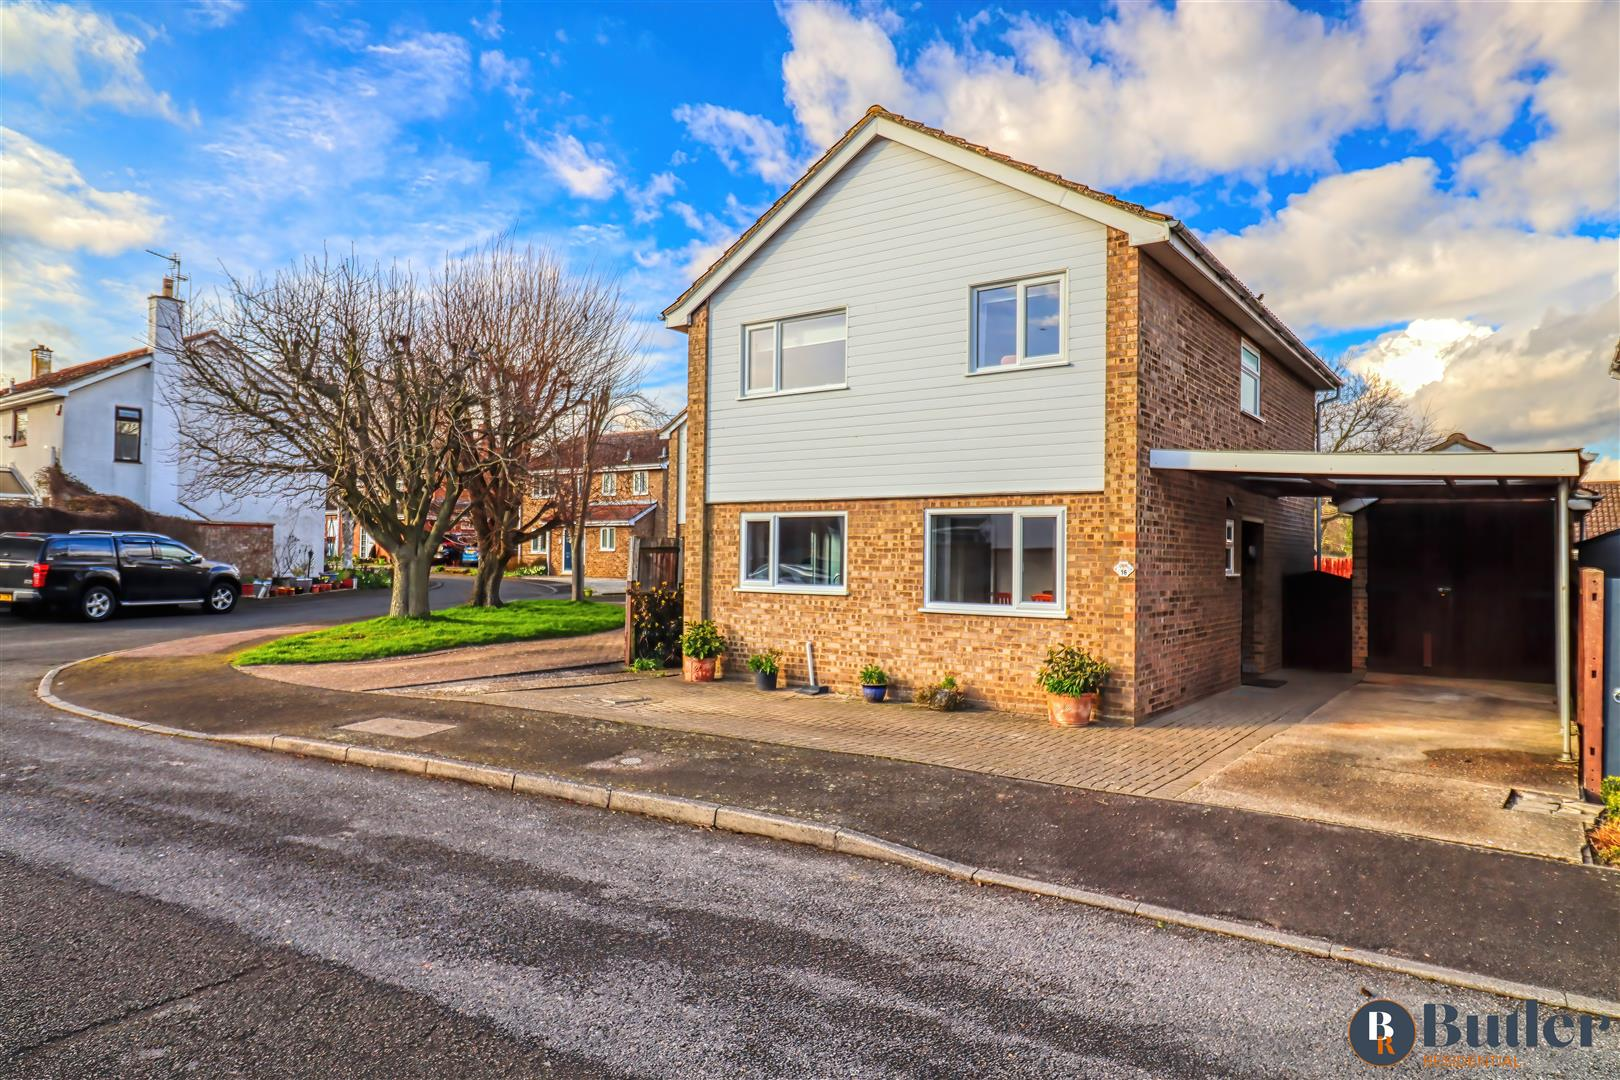 4 bed detached house for sale in Town Orchard, St. Neots - Property Image 1